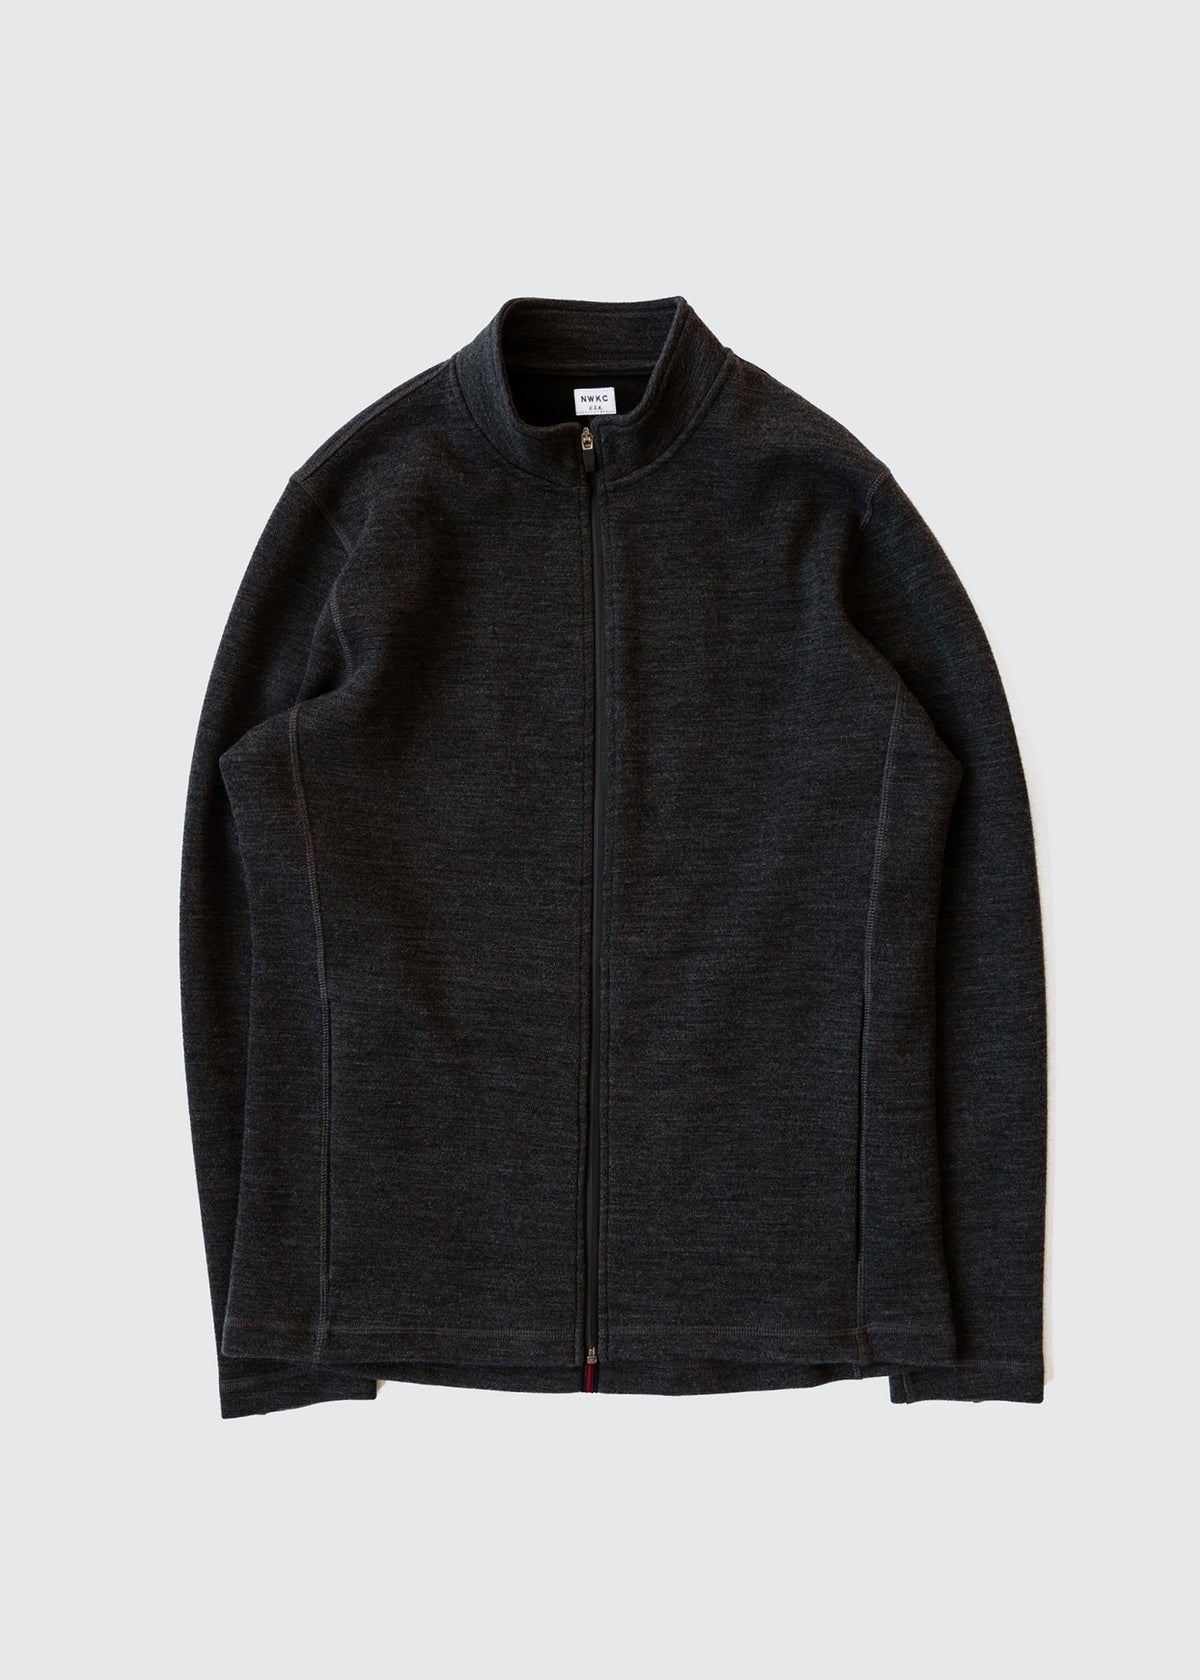 202 - NYLON COLLAR ZIP - CHARCOAL